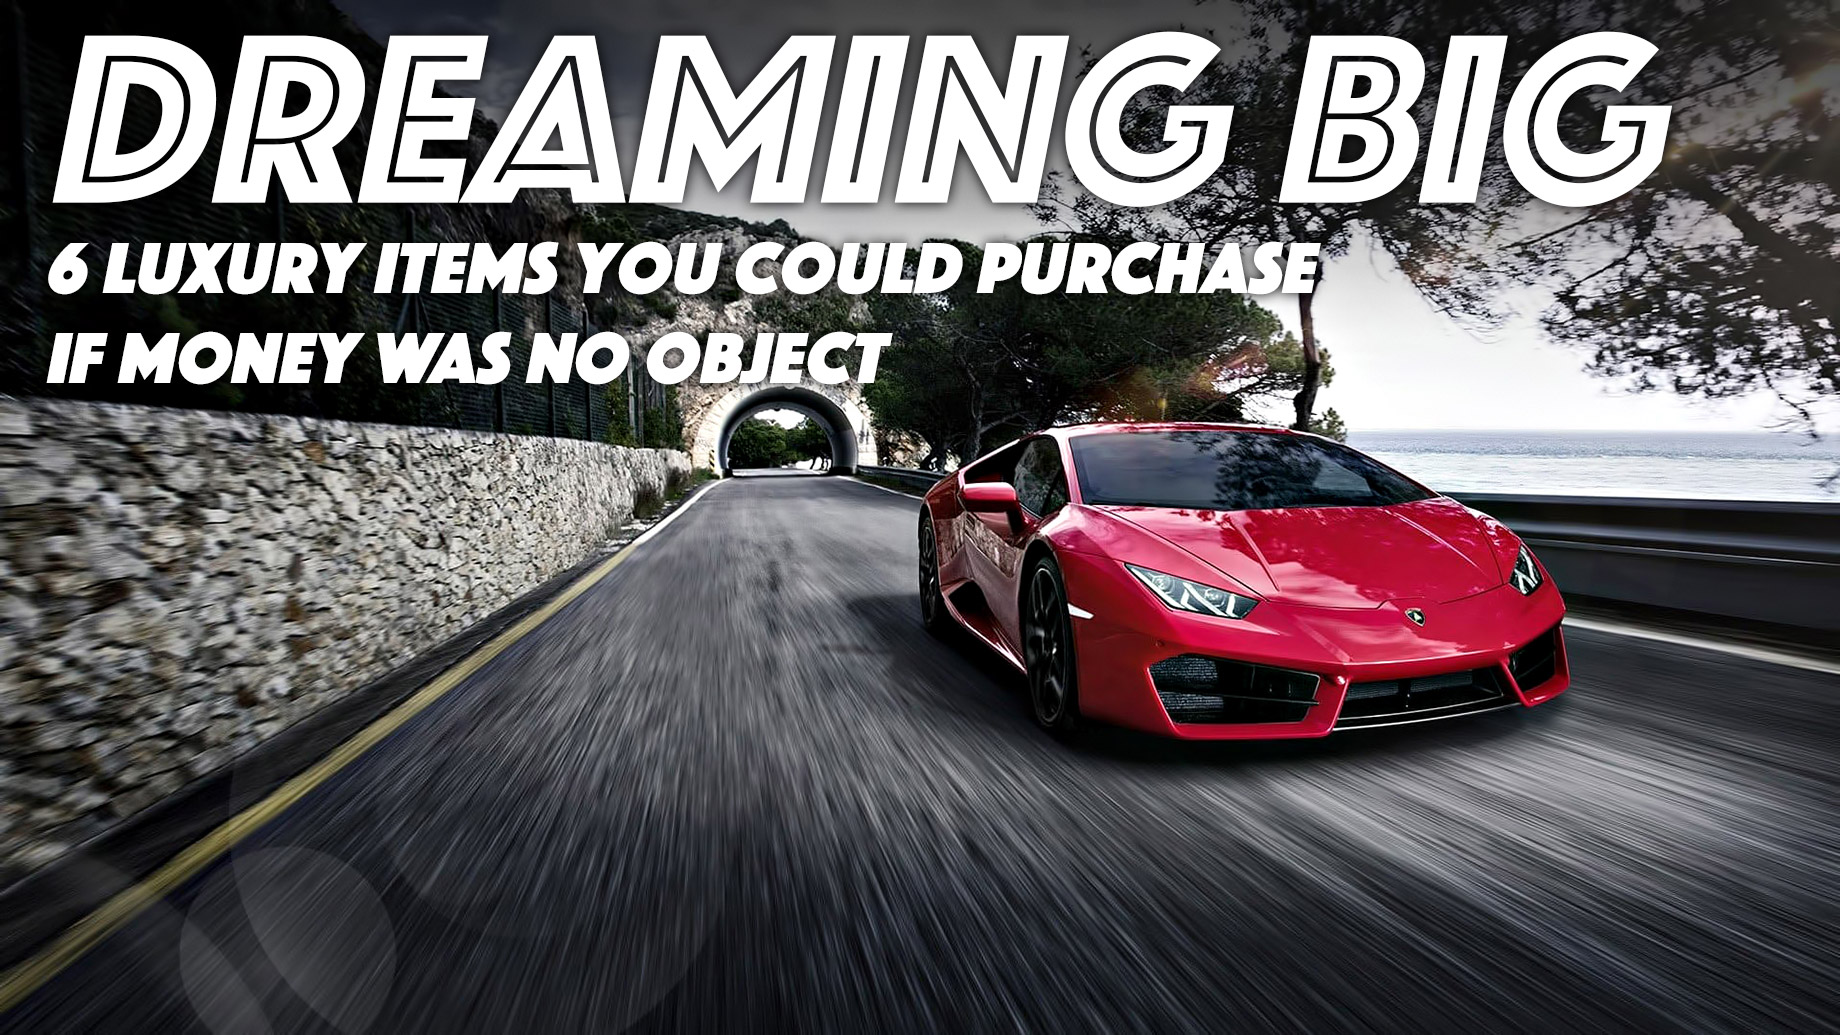 Dreaming Big – 6 Luxury Items You Could Purchase if Money Was No Object